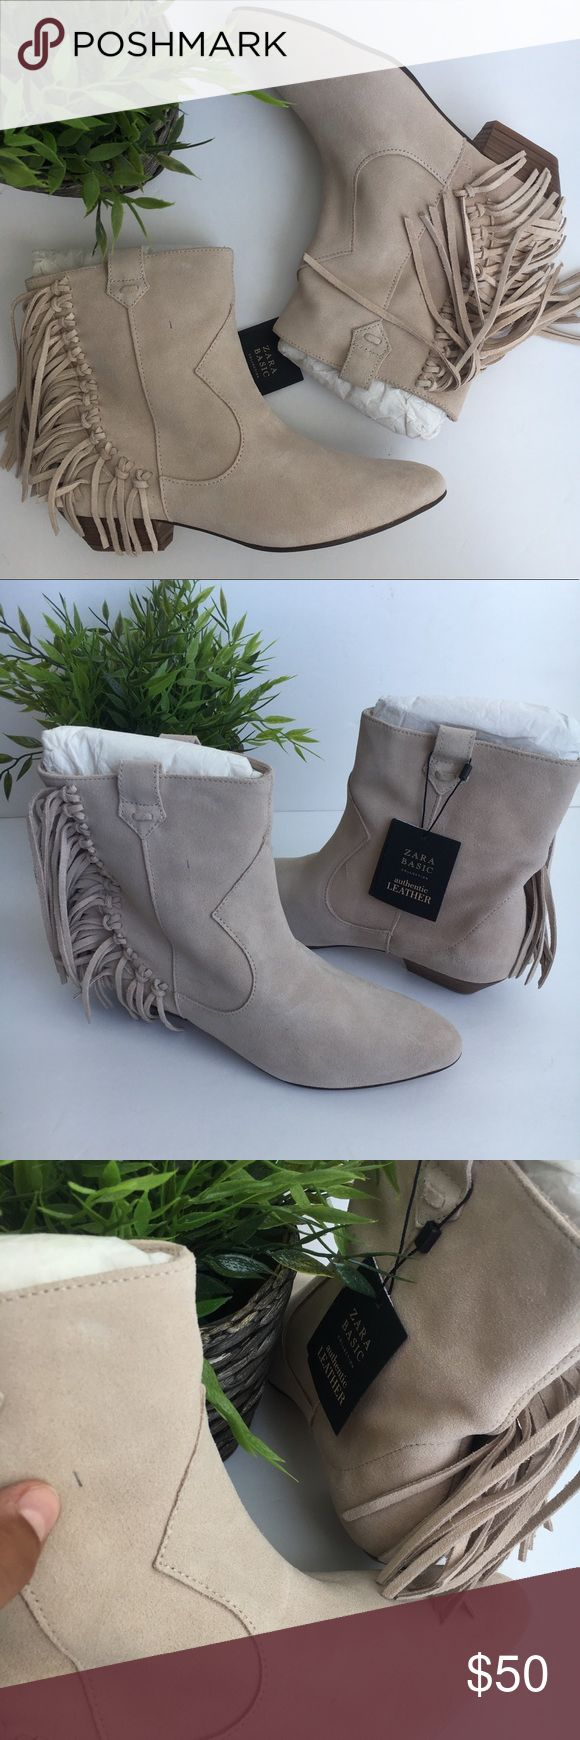 ZARA LEATHER fringe western booties ankle boots 8 Hi and thank you for viewing this beauty! :)   This item is very gently used and in new condition! No flaws stains or holes and comes from a smoke free home.   Heel height: 2 cm  Offers are welcome and I offer bundle discounts.   Please let me know if you have any questions!   xxxxxxx Zara Shoes Ankle Boots & Booties